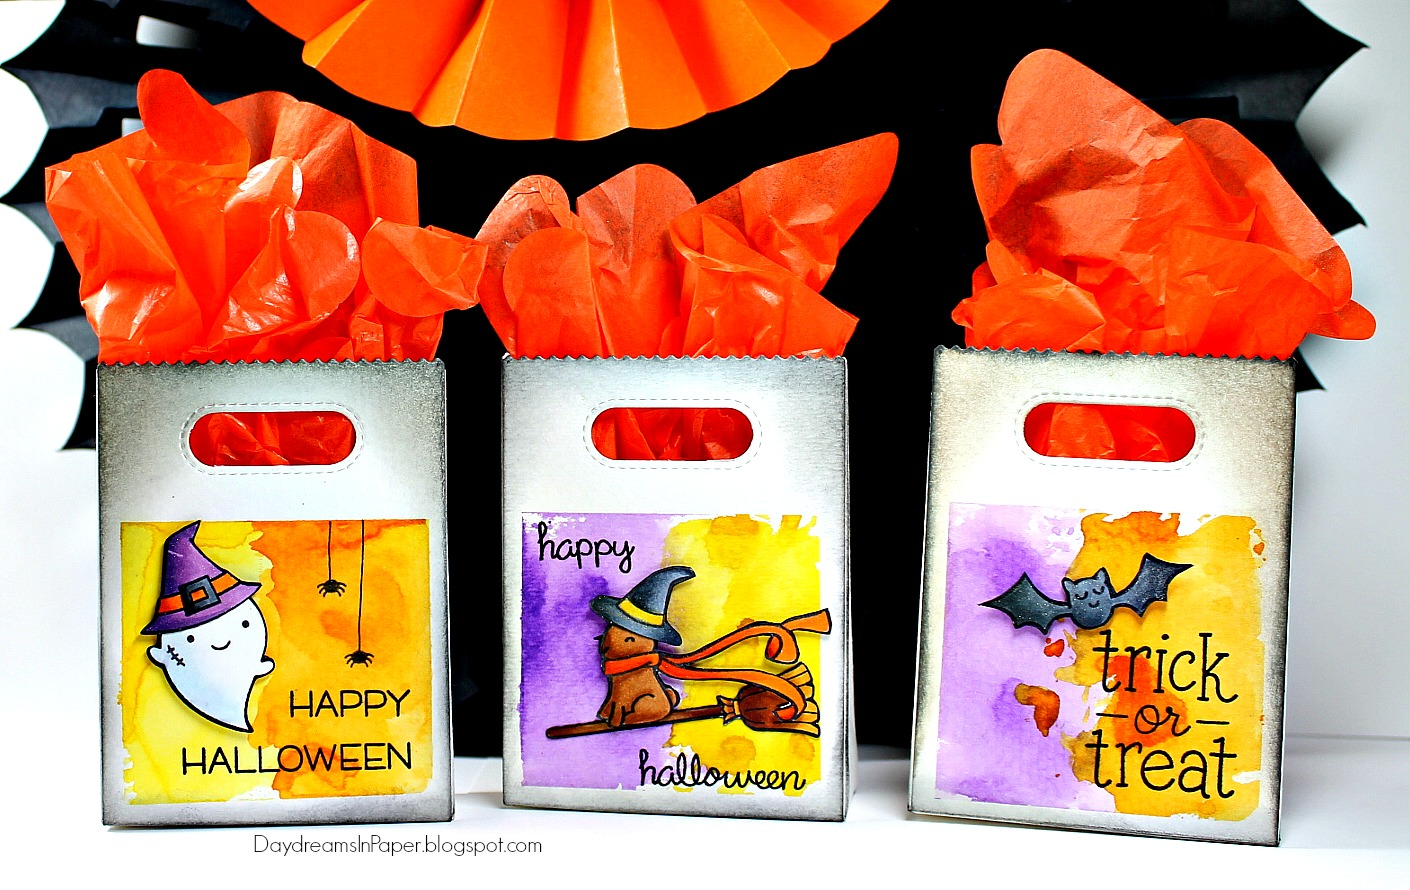 daydreams in paper: lawn fawn - halloween goodie bags